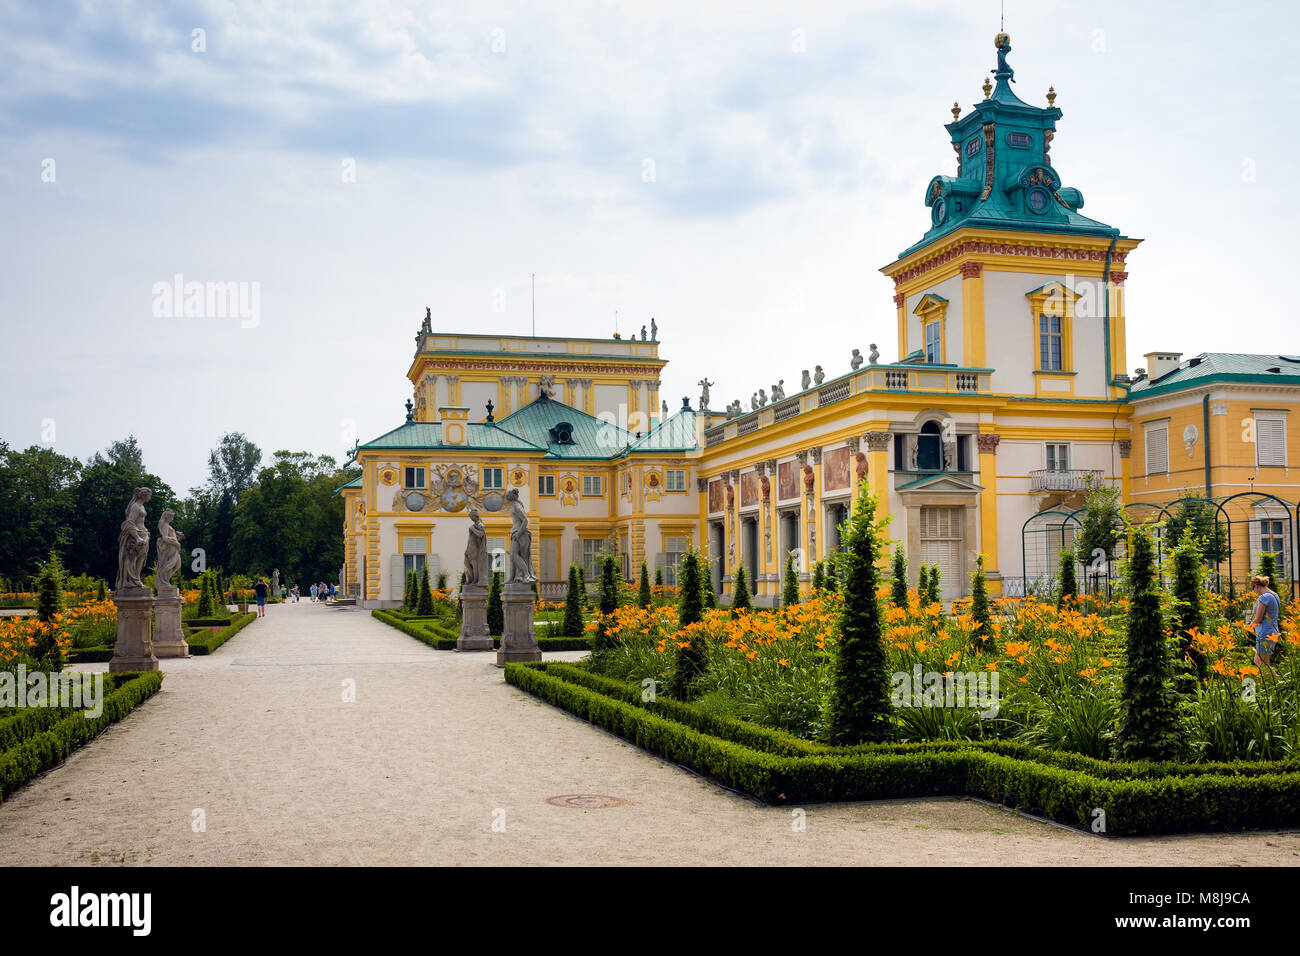 WARSAW, POLAND - JULY 26, 2014: Wilanow Royal Palace gardens and ancient statues Stock Photo